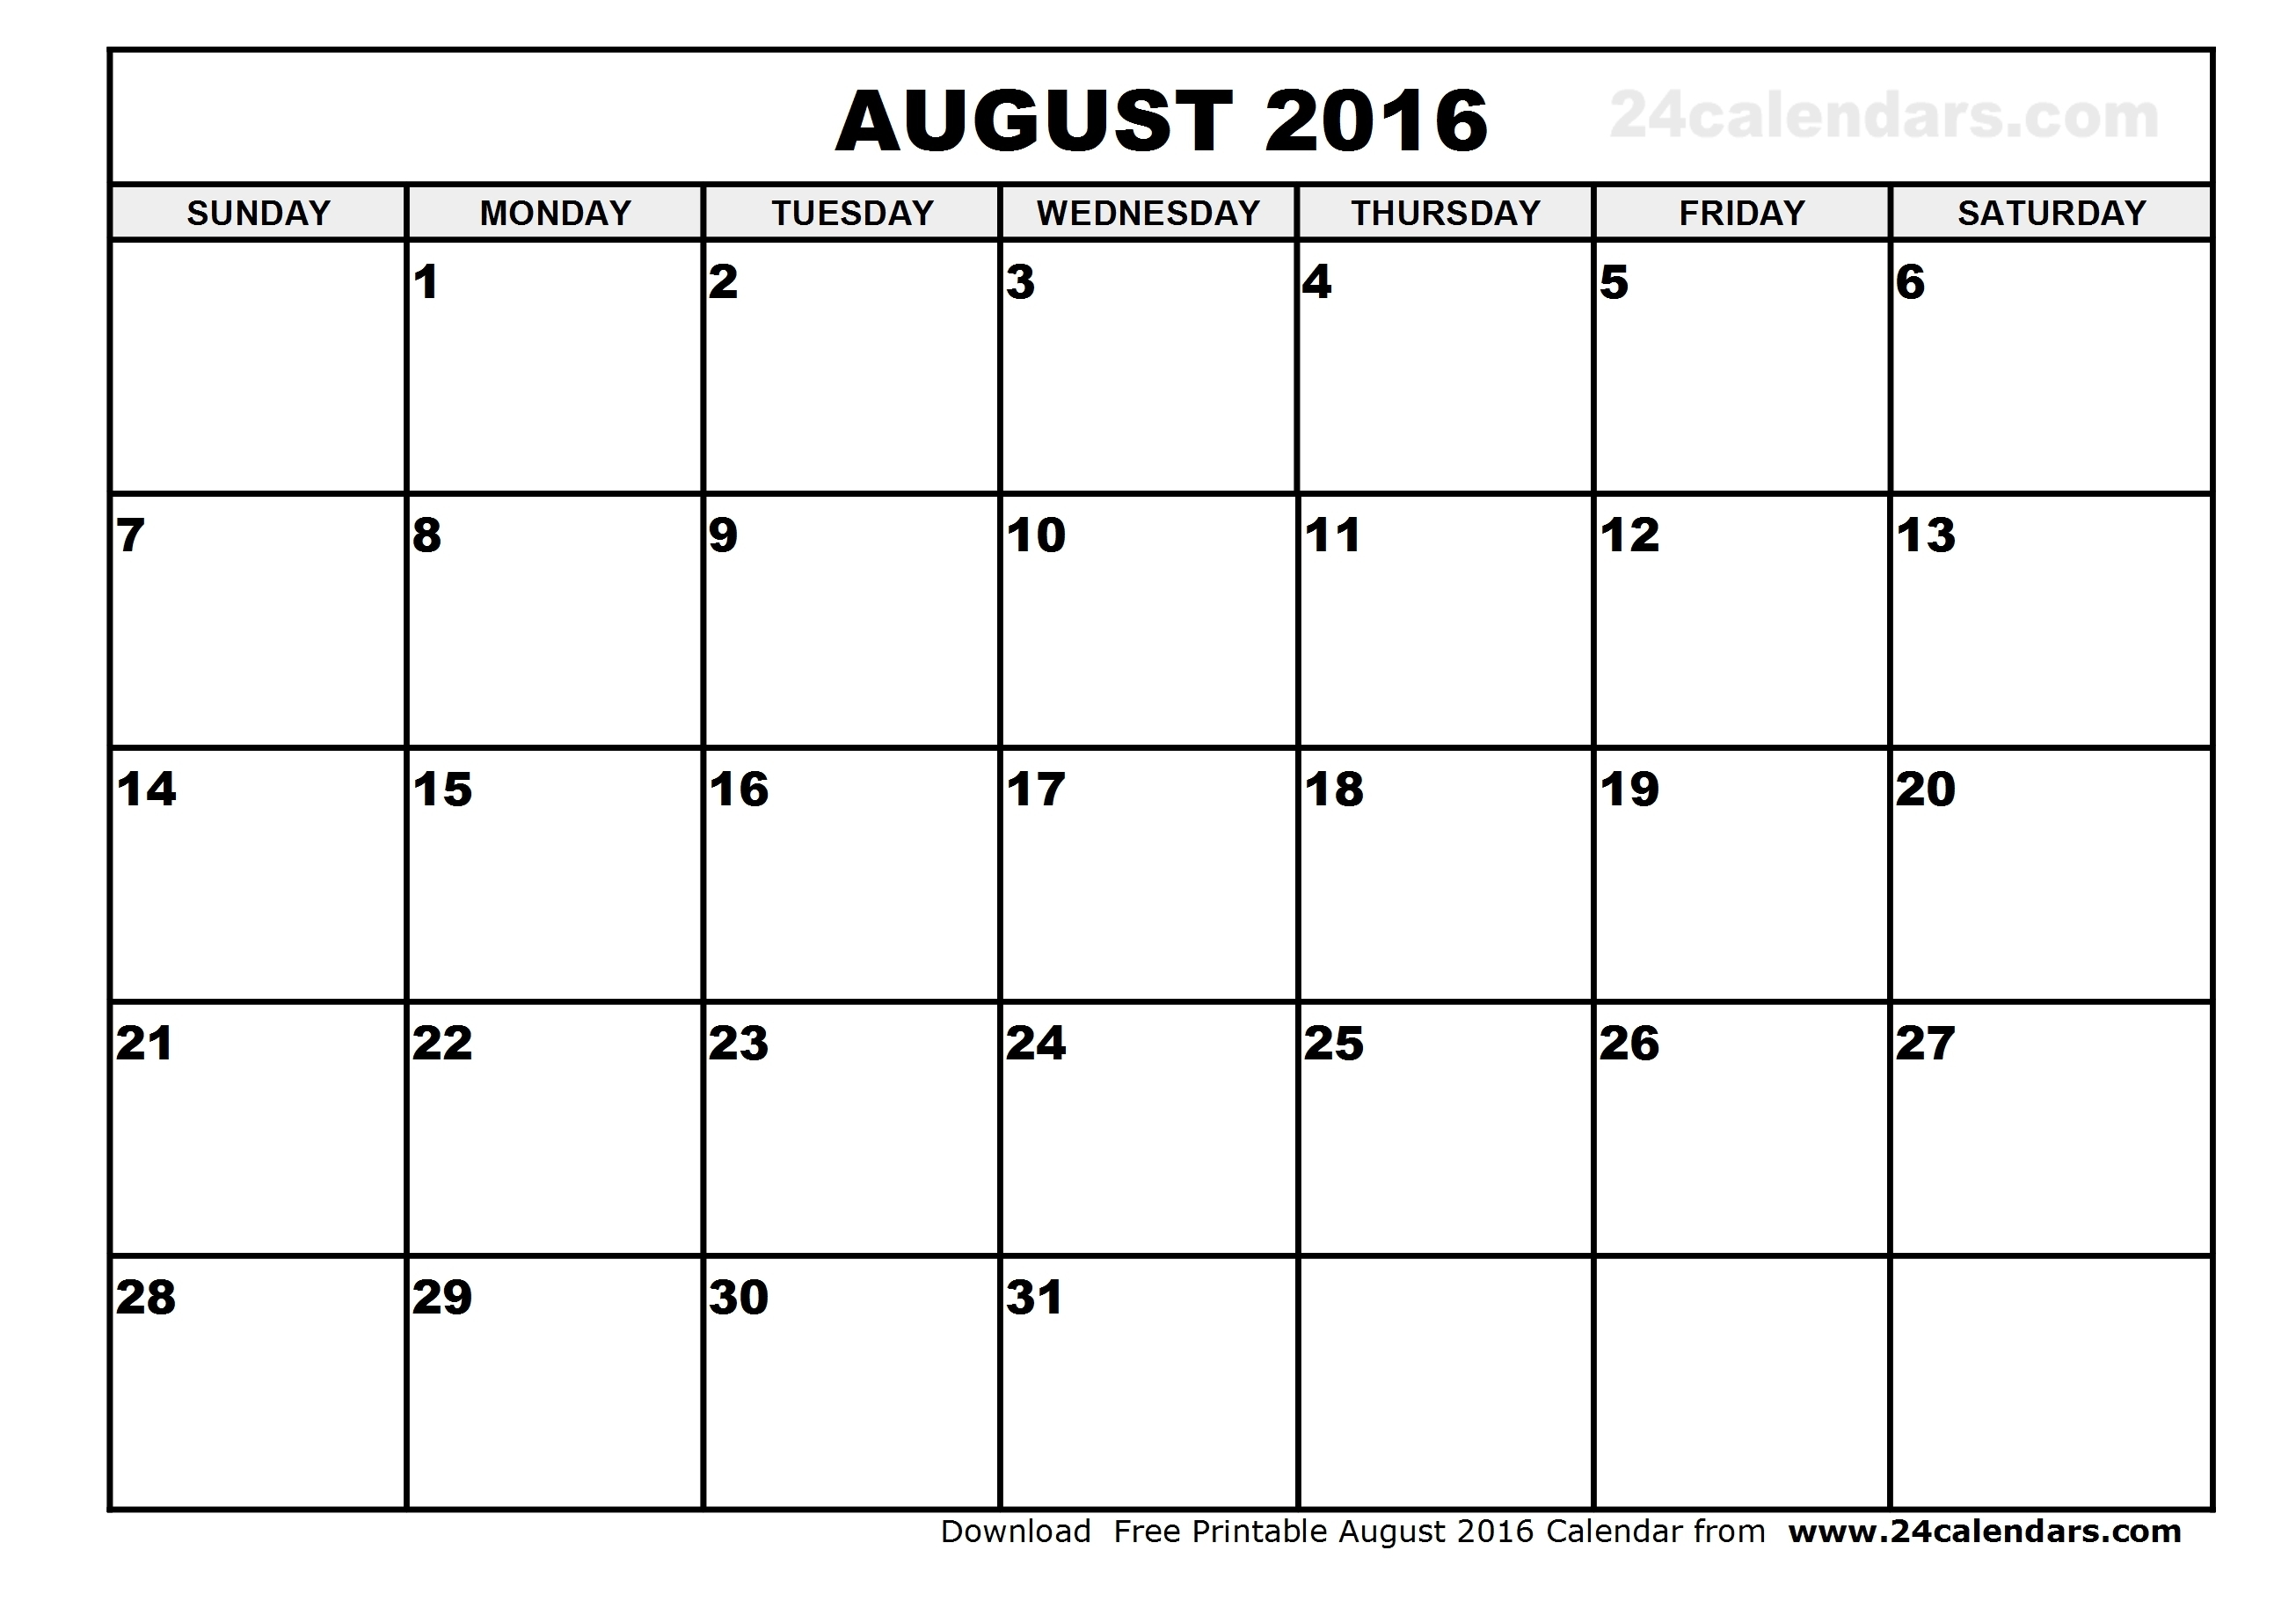 Printable Calendars August 2016 | Aaron The Artist in Month Of August On A Calendar